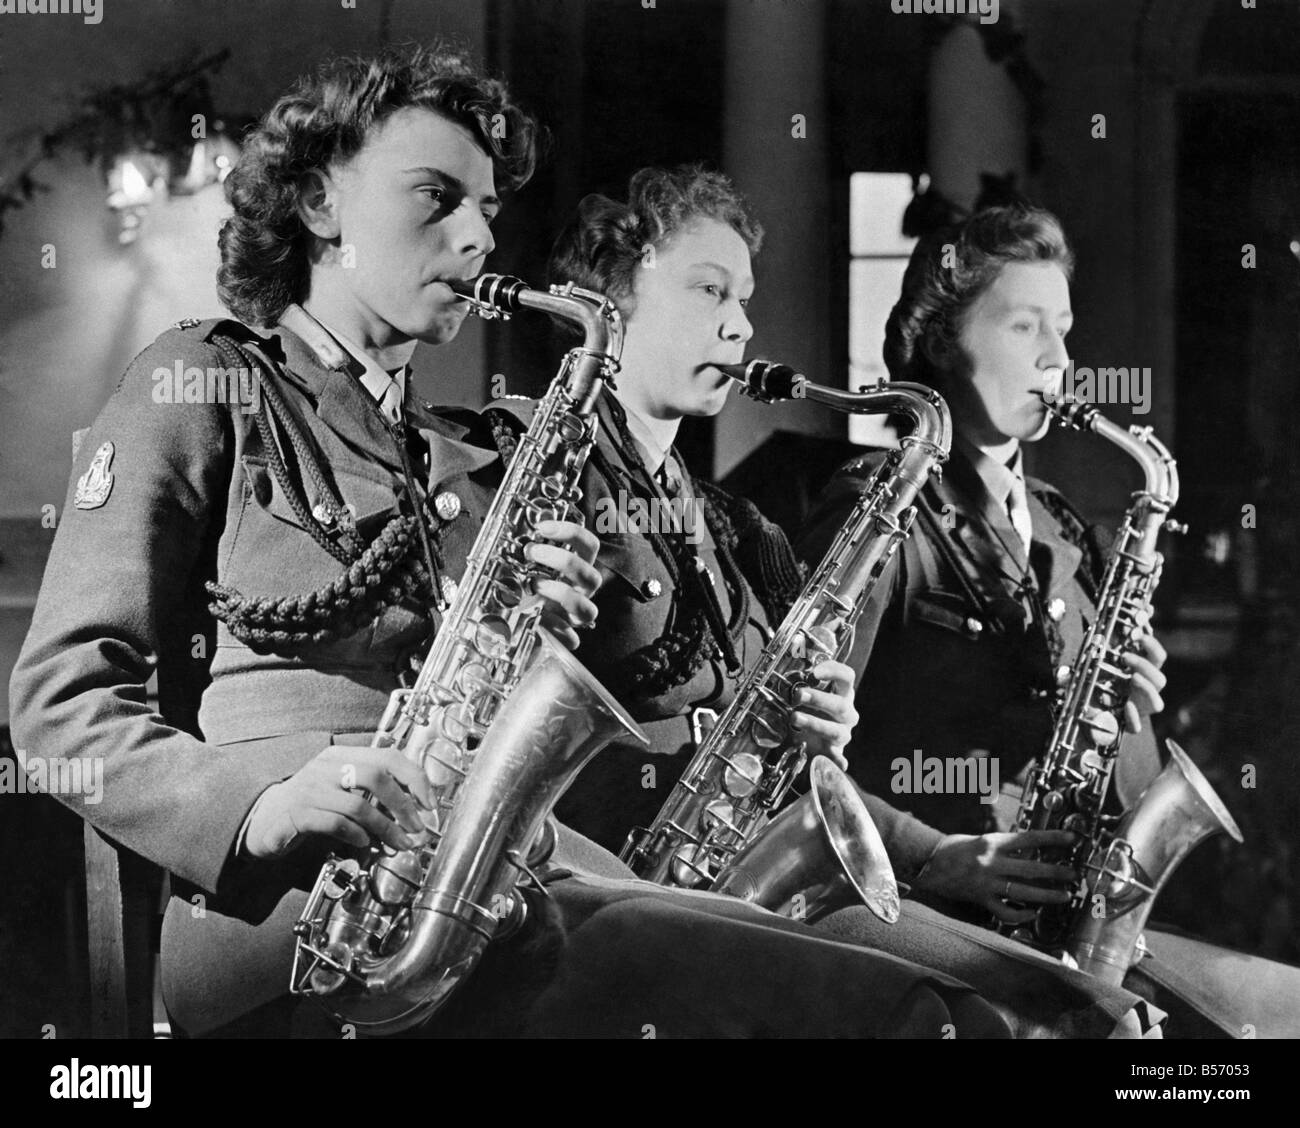 World War II Women. Three times the Sax. Three Sax players from the ATS dance band seen here performing. January Stock Photo